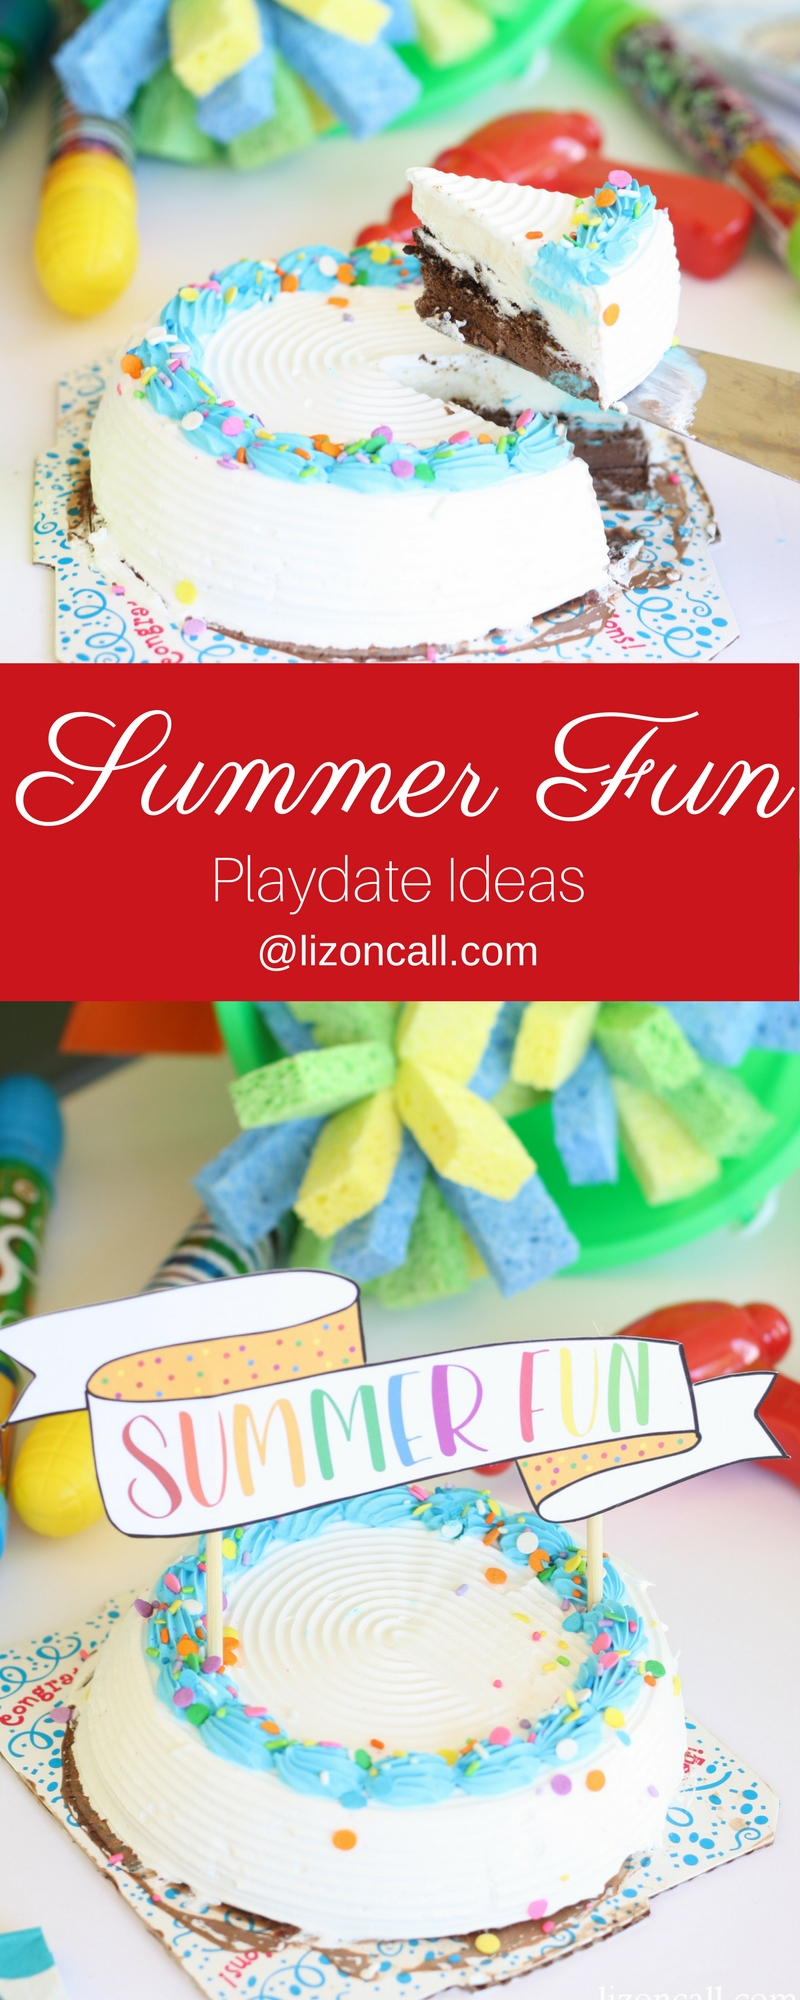 Kick those summertime blues out the window with these summer fun playdate ideas. Food and games that the kids are going to love!